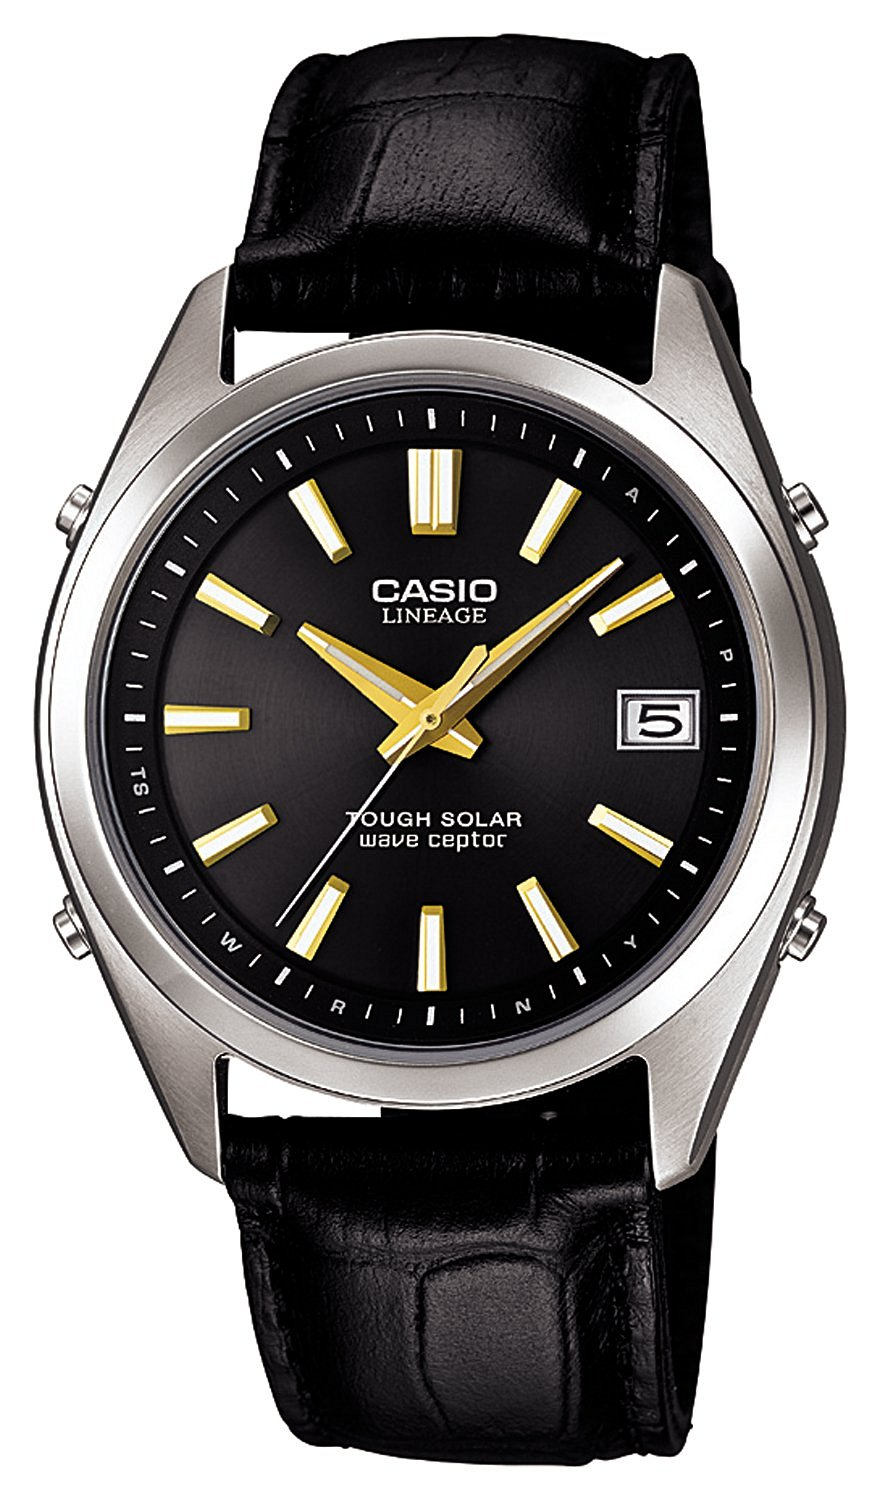 443c8985e865 Get Quotations · Casio LINEAGE WAVE CEPTOR Tough Solar LIW-130TLJ-1AJF  (Japan Import)